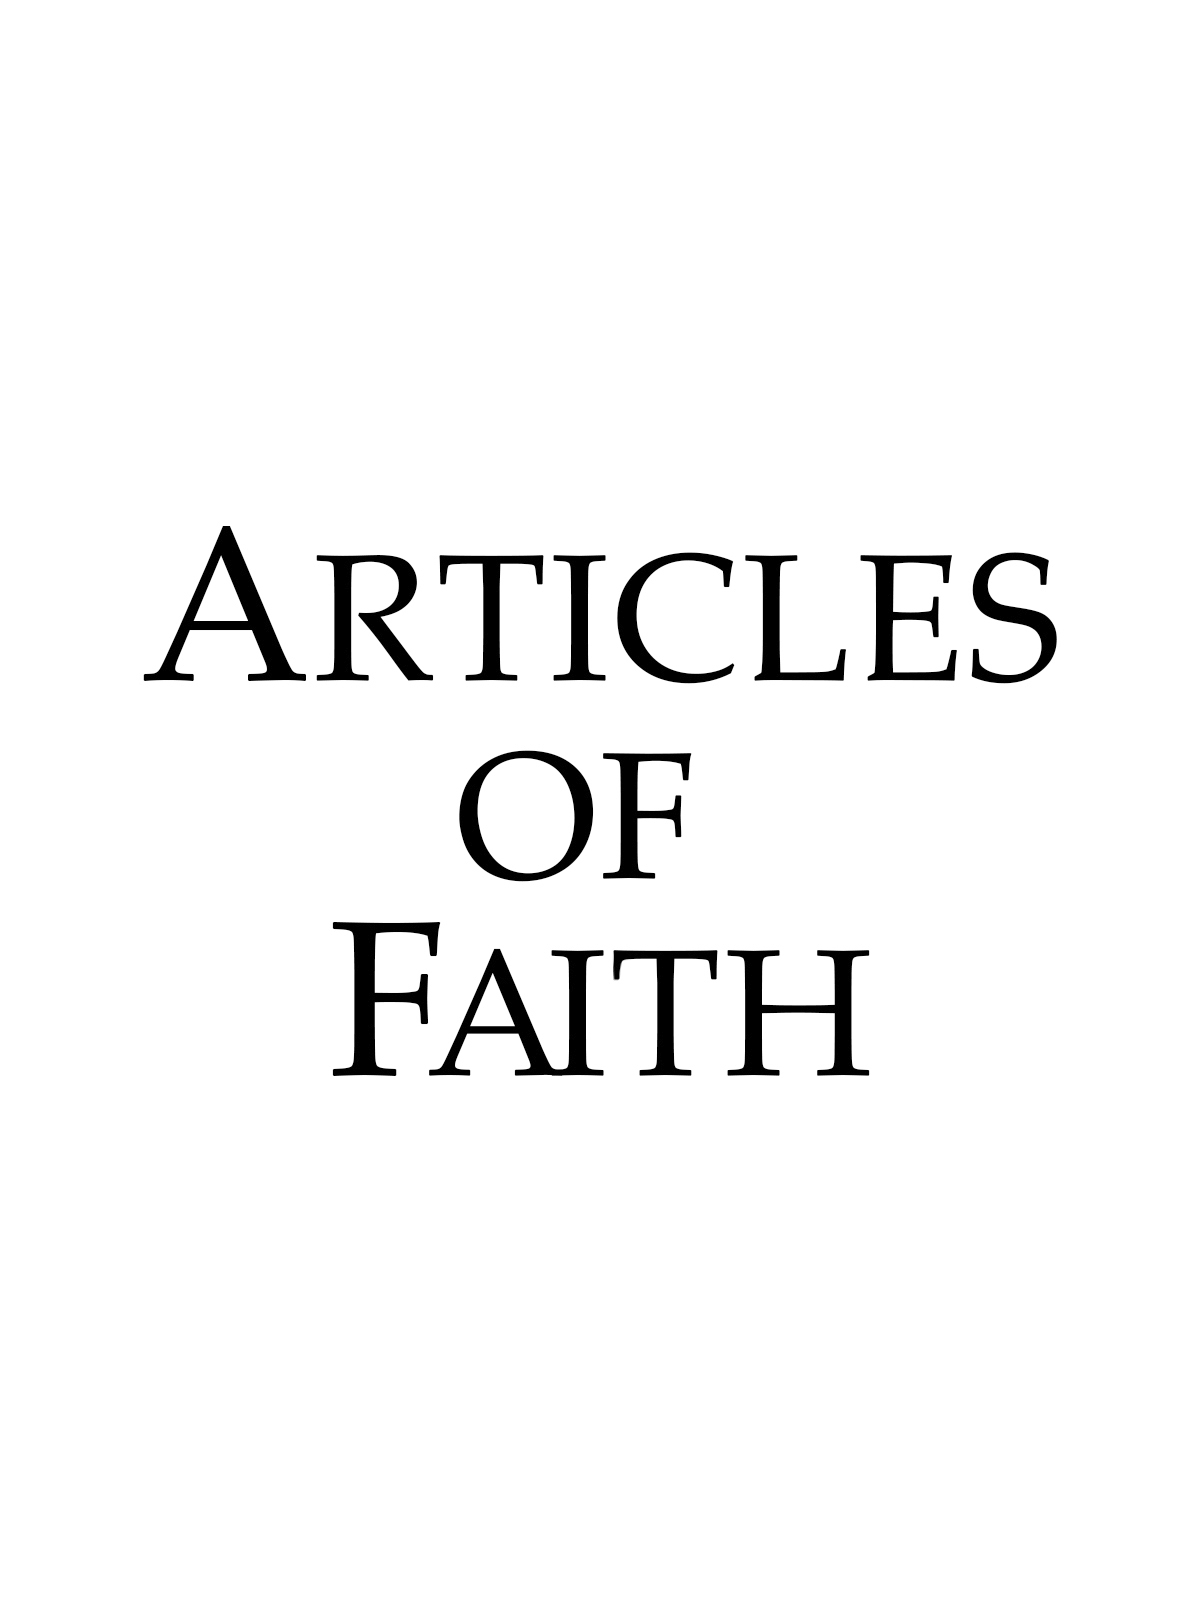 A depiction of Articles of Faith for the Primary Schedule.